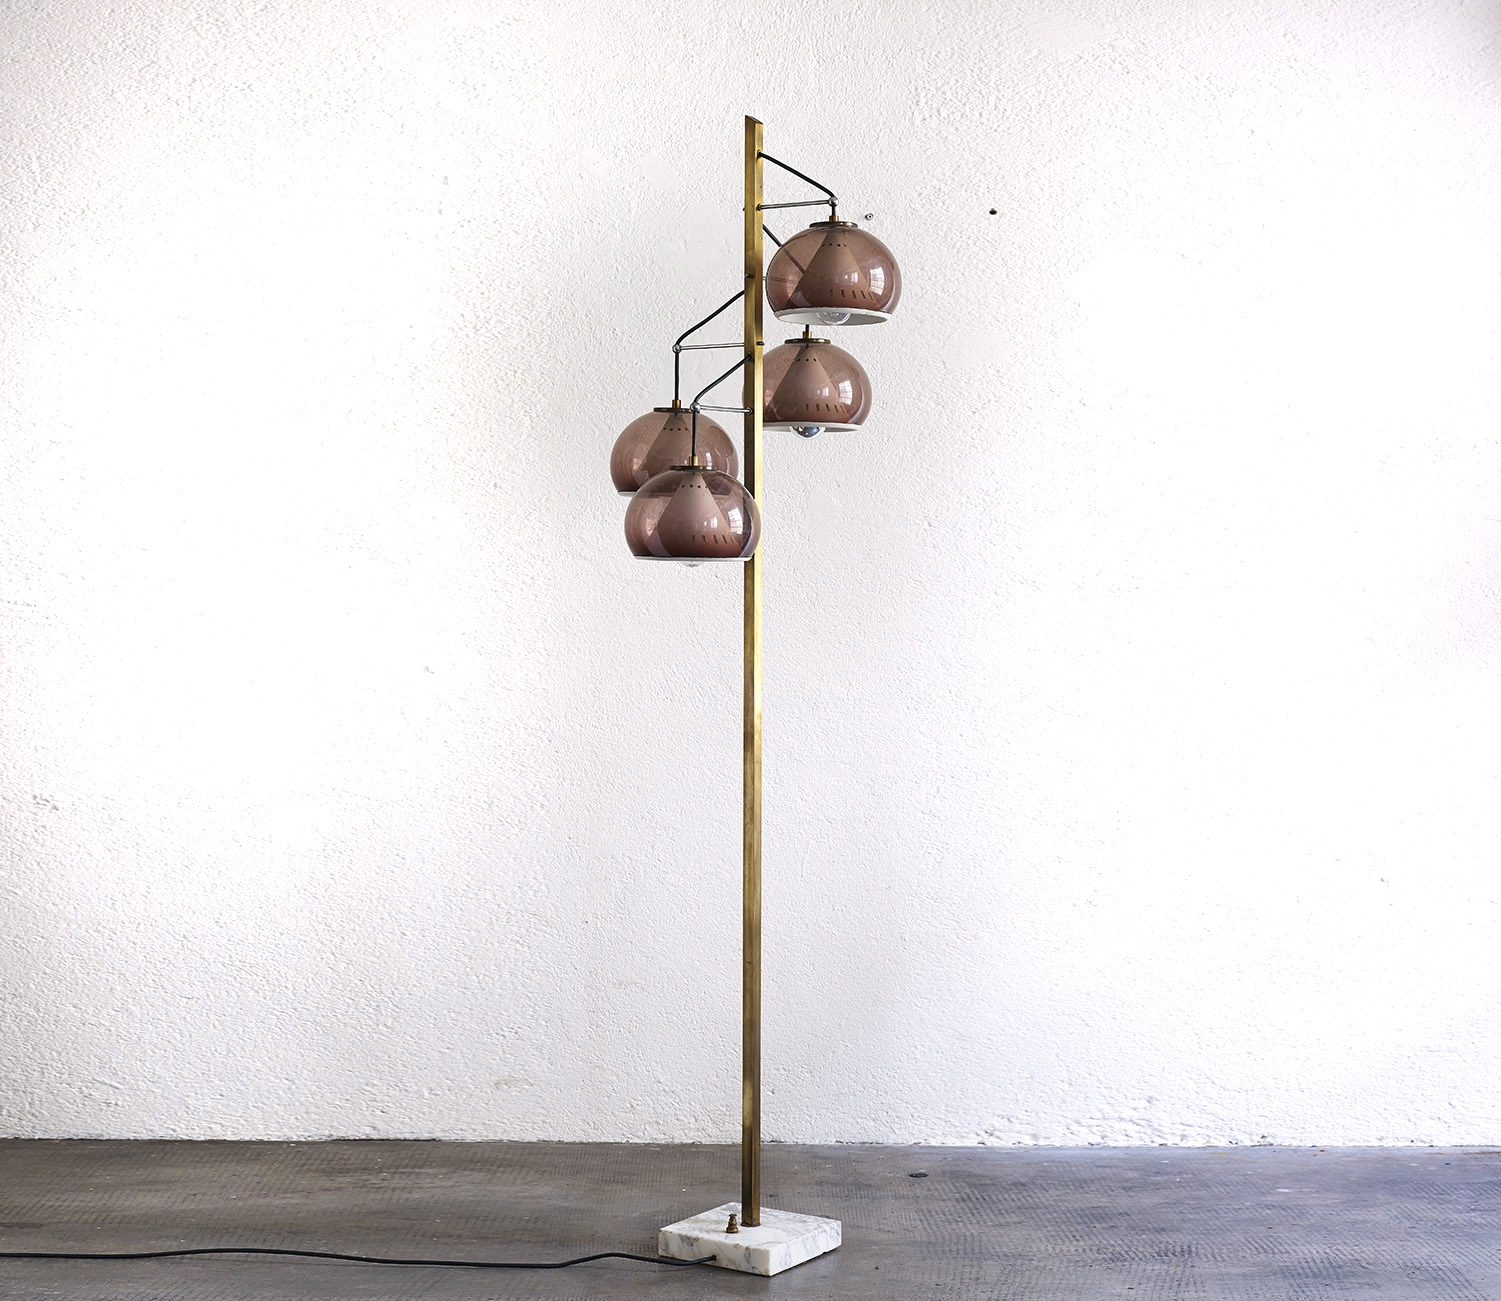 stilux-floor-lamp-image-02